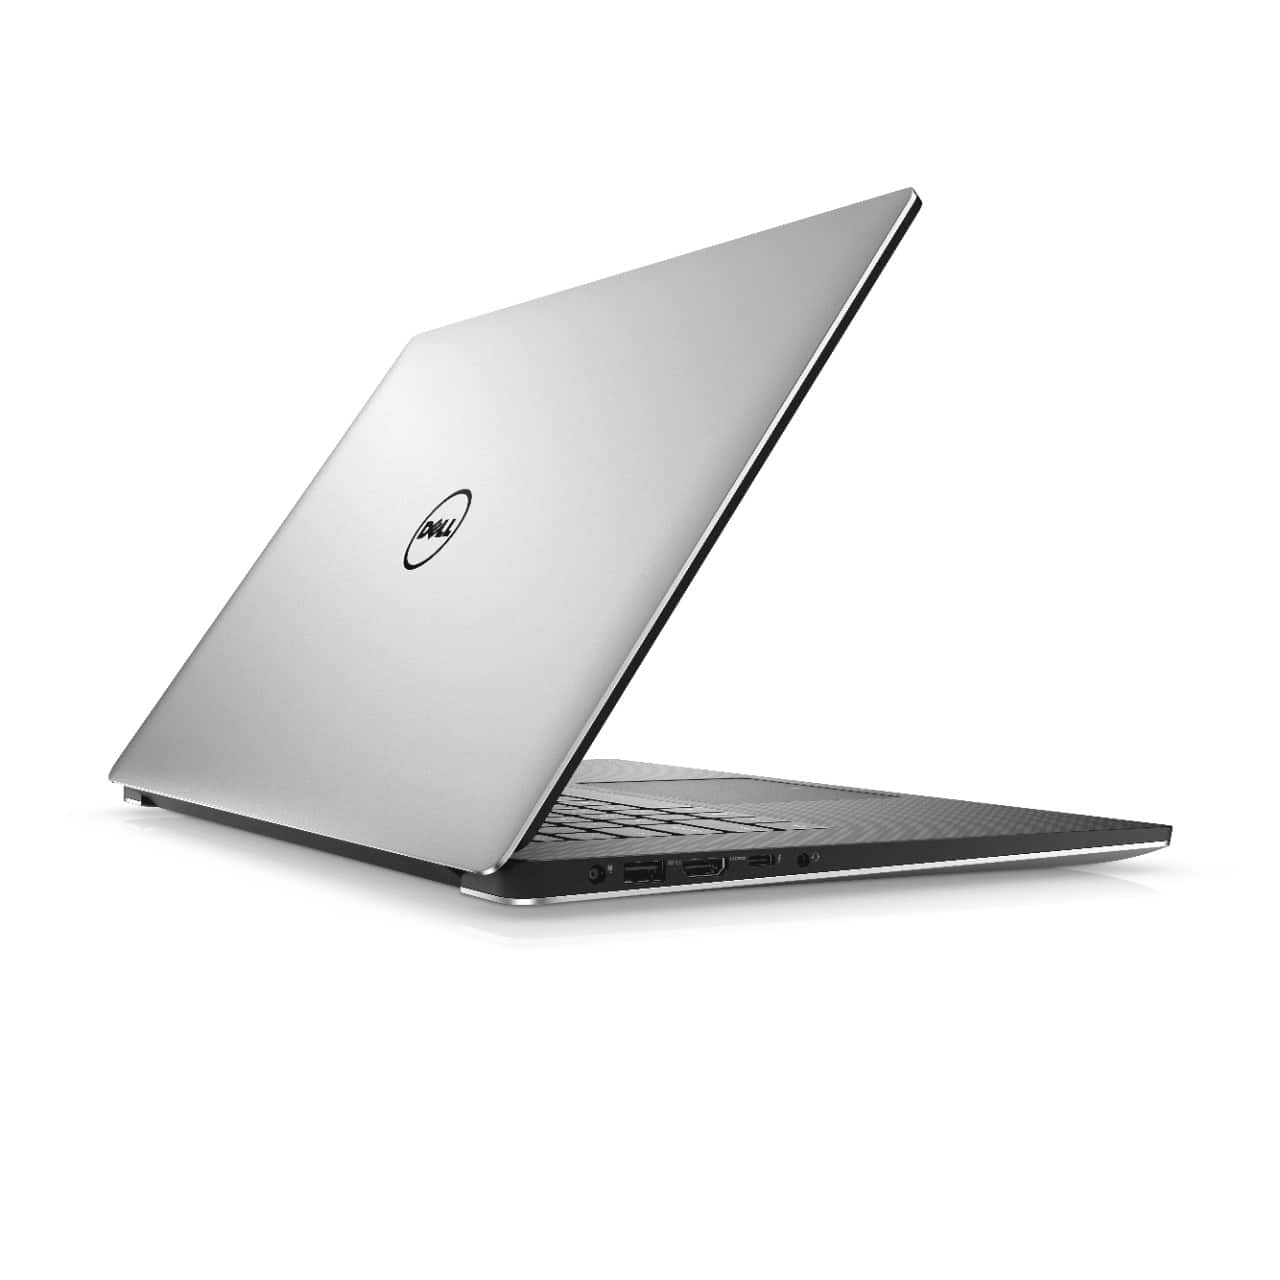 Dell Outlet Certified Refurbished XPS 9560 - 7700HQ, 16 GB, GTX 1050 4 GB,512 NVMEssd, FHD, 97Whr battery - $967.30 via chat - ask for 15% off promo